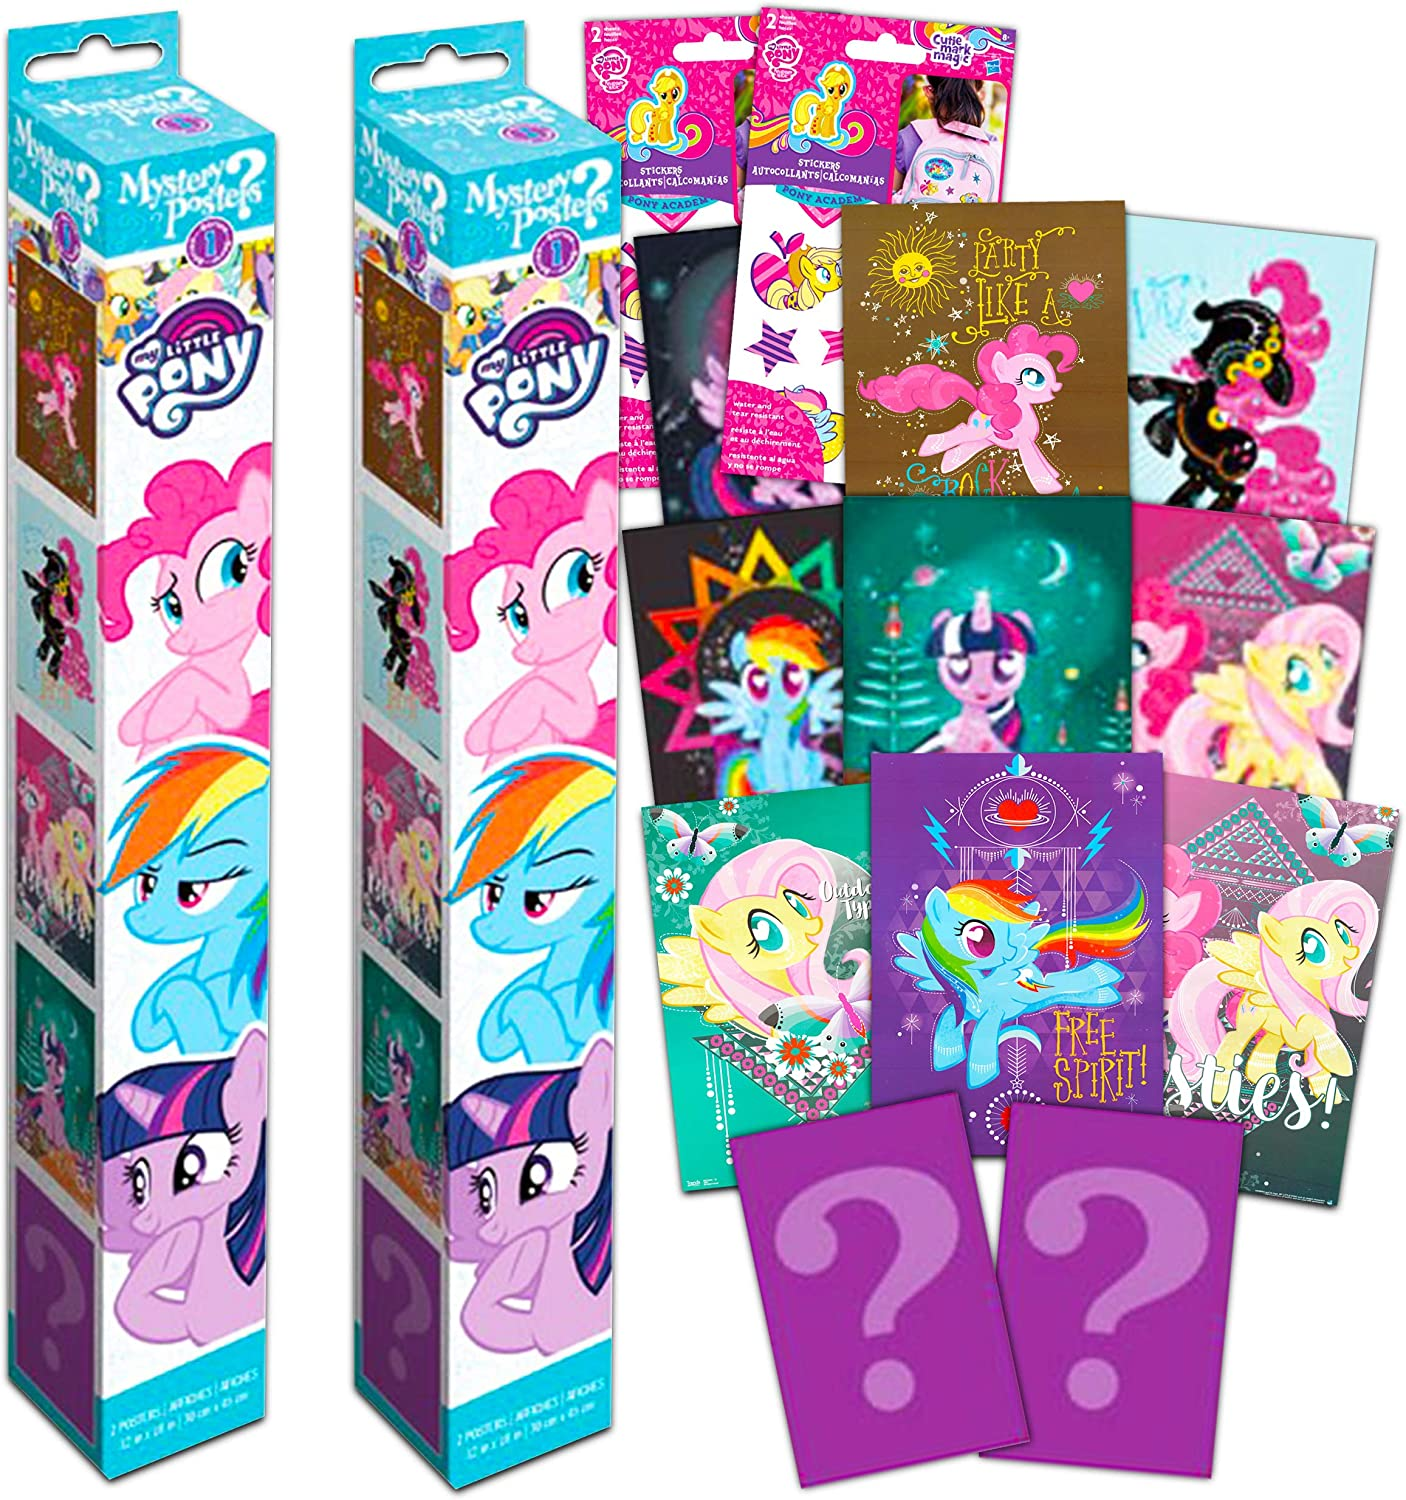 My Little Pony Poster Mystery Set ~ Bundle Includes 4 My Little Pony Wall Posters with Stickers (My Little Pony Room Decor for Kids Boys Girls)